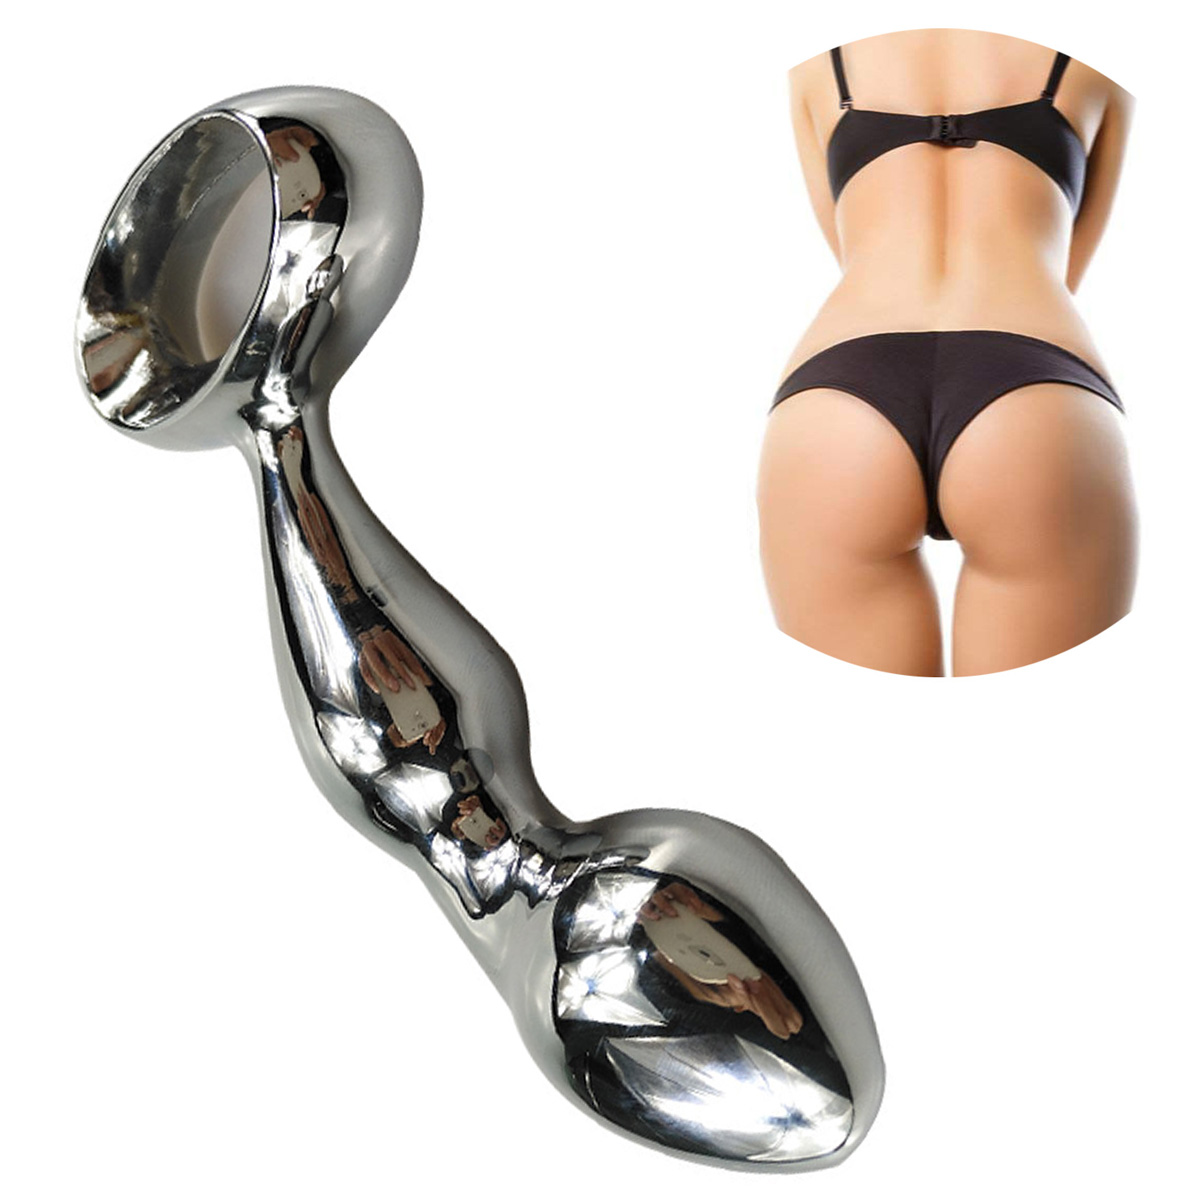 Stainless Steel Anal Hook with Hole Ring Metal Butt Plug Vagina Prostate Massage Device Wand Sex Toys Adult Products Chastity in Anal Sex Toys from Beauty Health